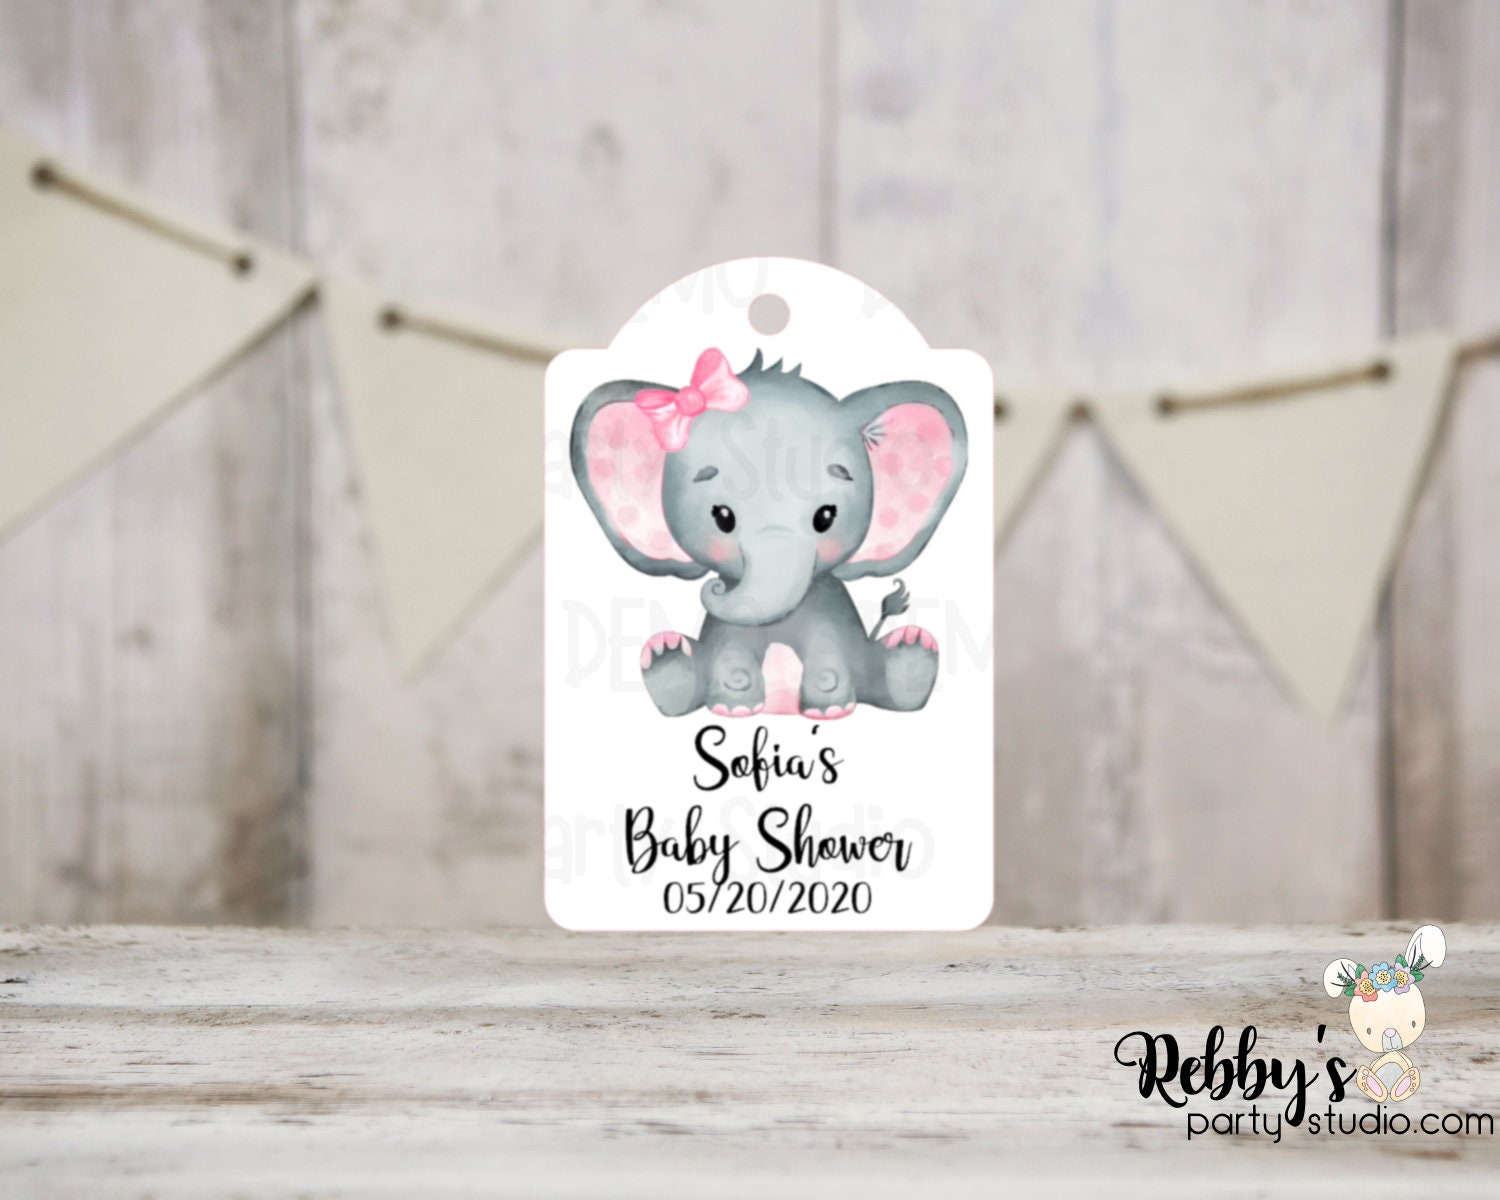 4 Elephant Tags Gift Tags Cute Elephant Tags Party Tags Set of 6 Birthday Tags Baby Tags